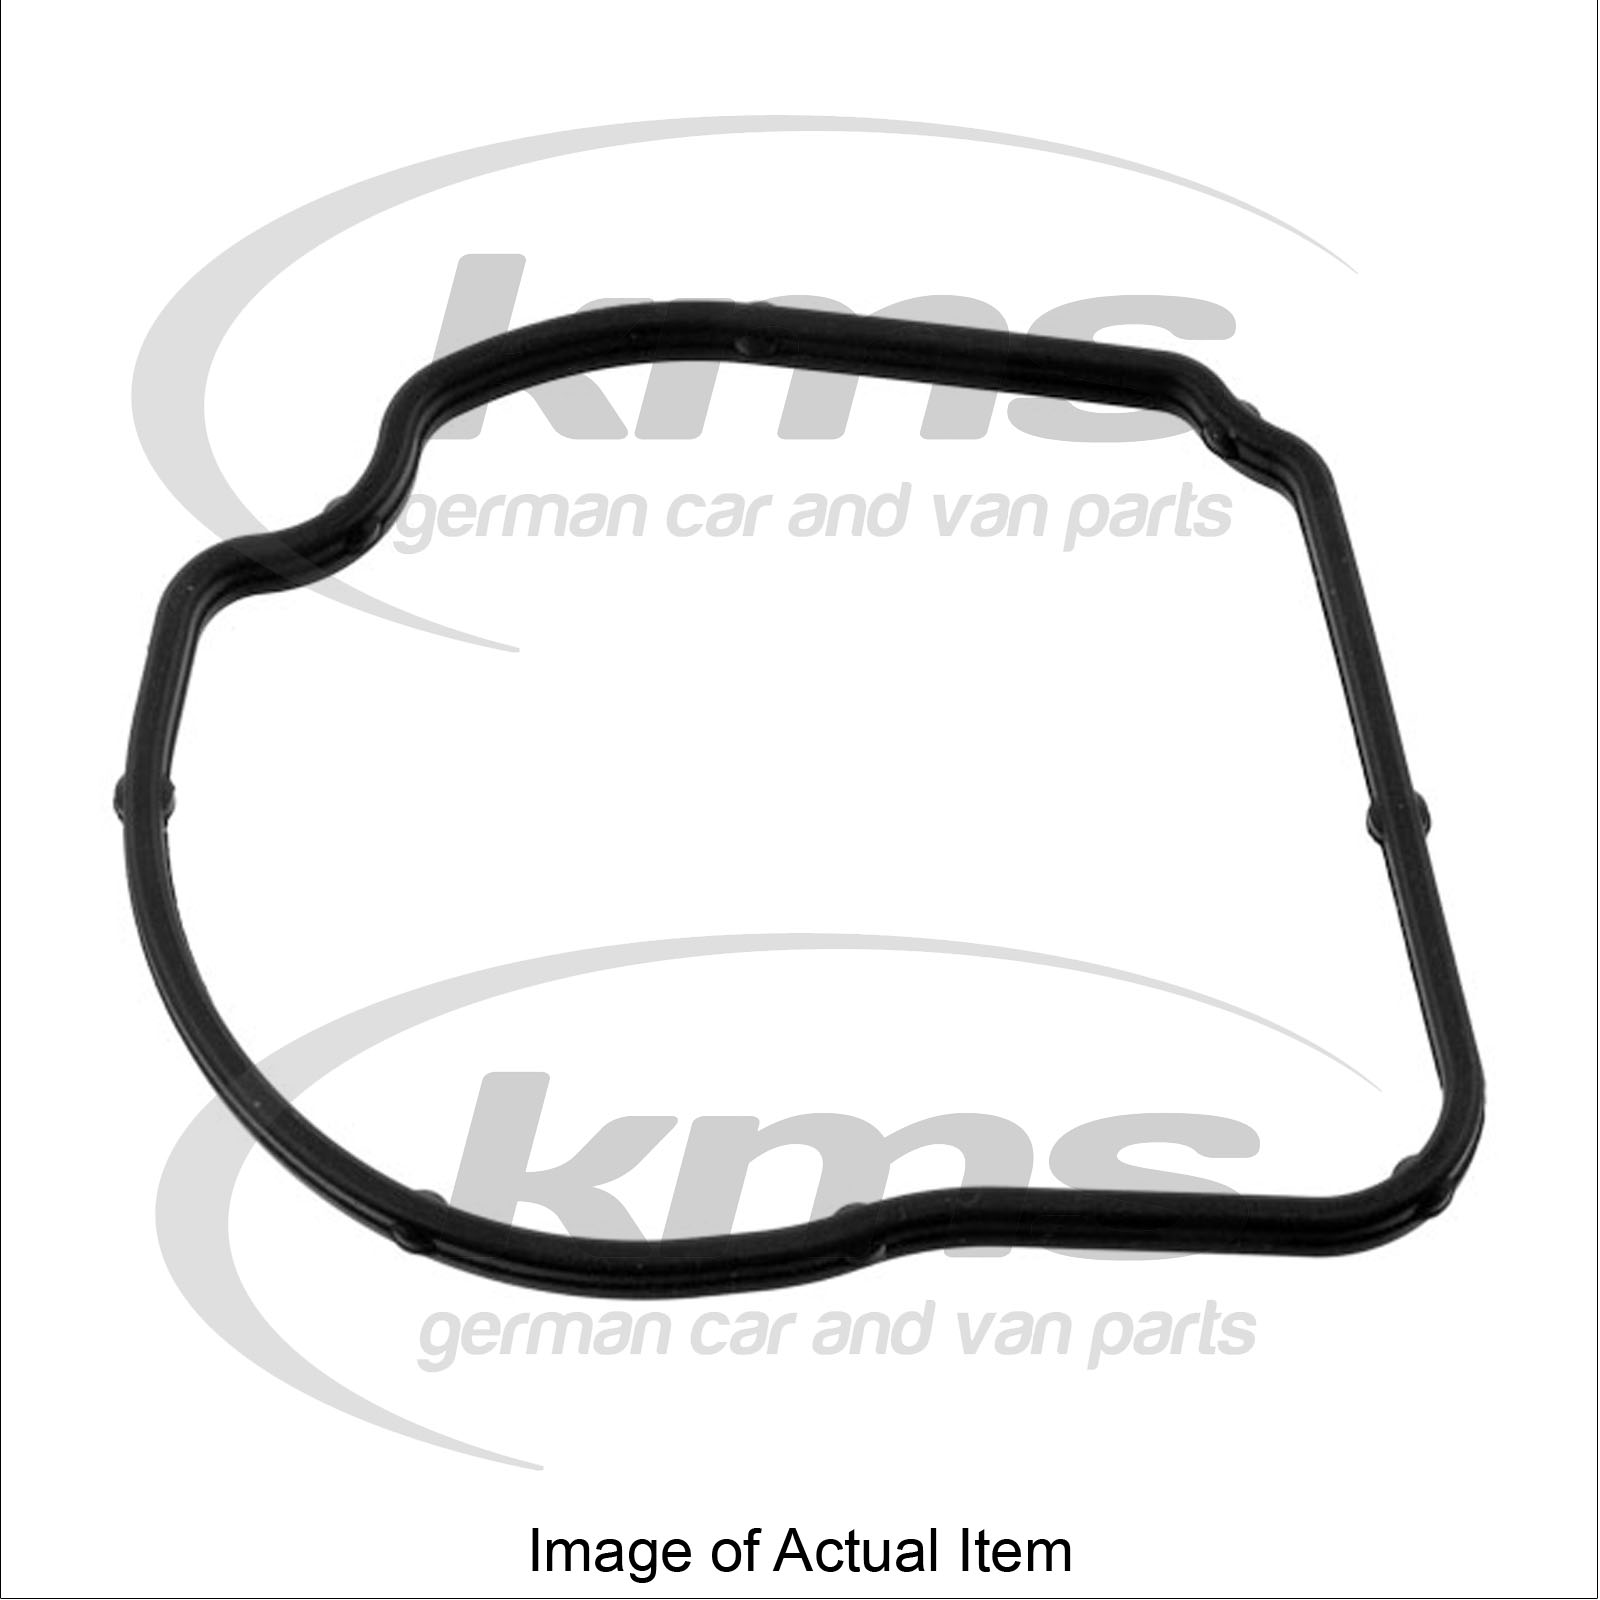 THERMOSTAT GASKET Mercedes Benz C Class Saloon C220CDi